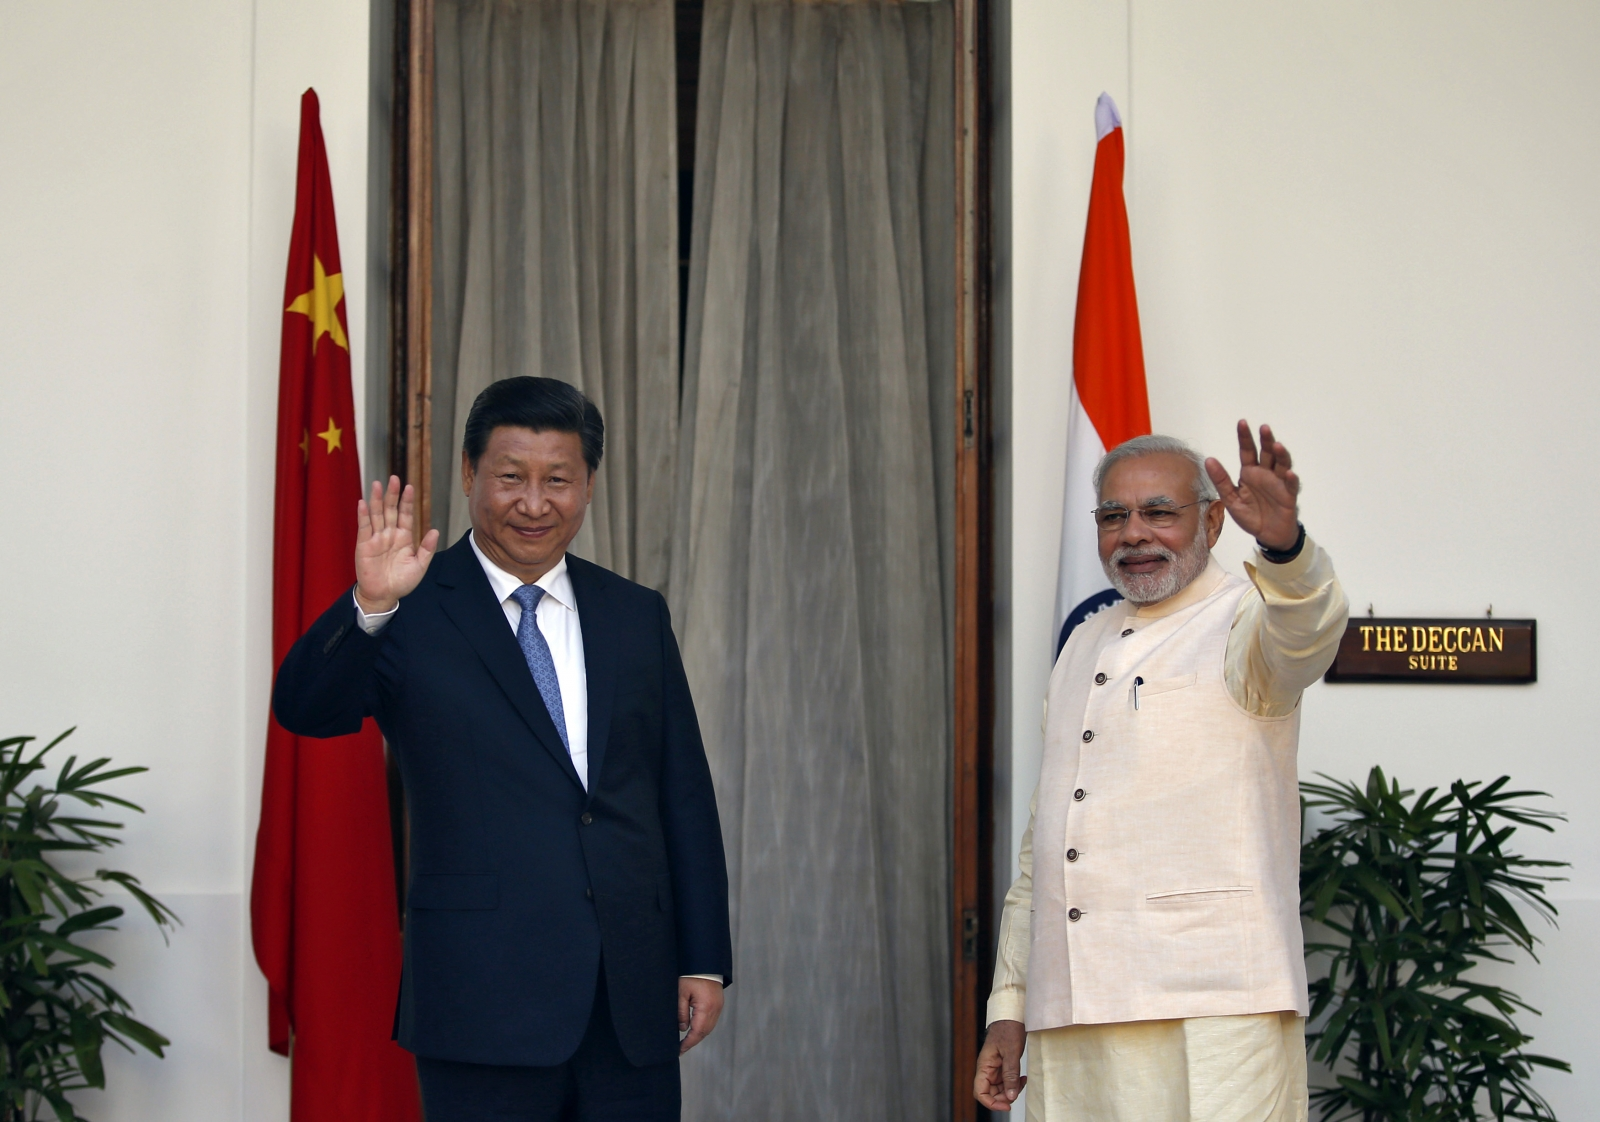 Chinese president Xi Jinping and Doordarshan reader's gaffe